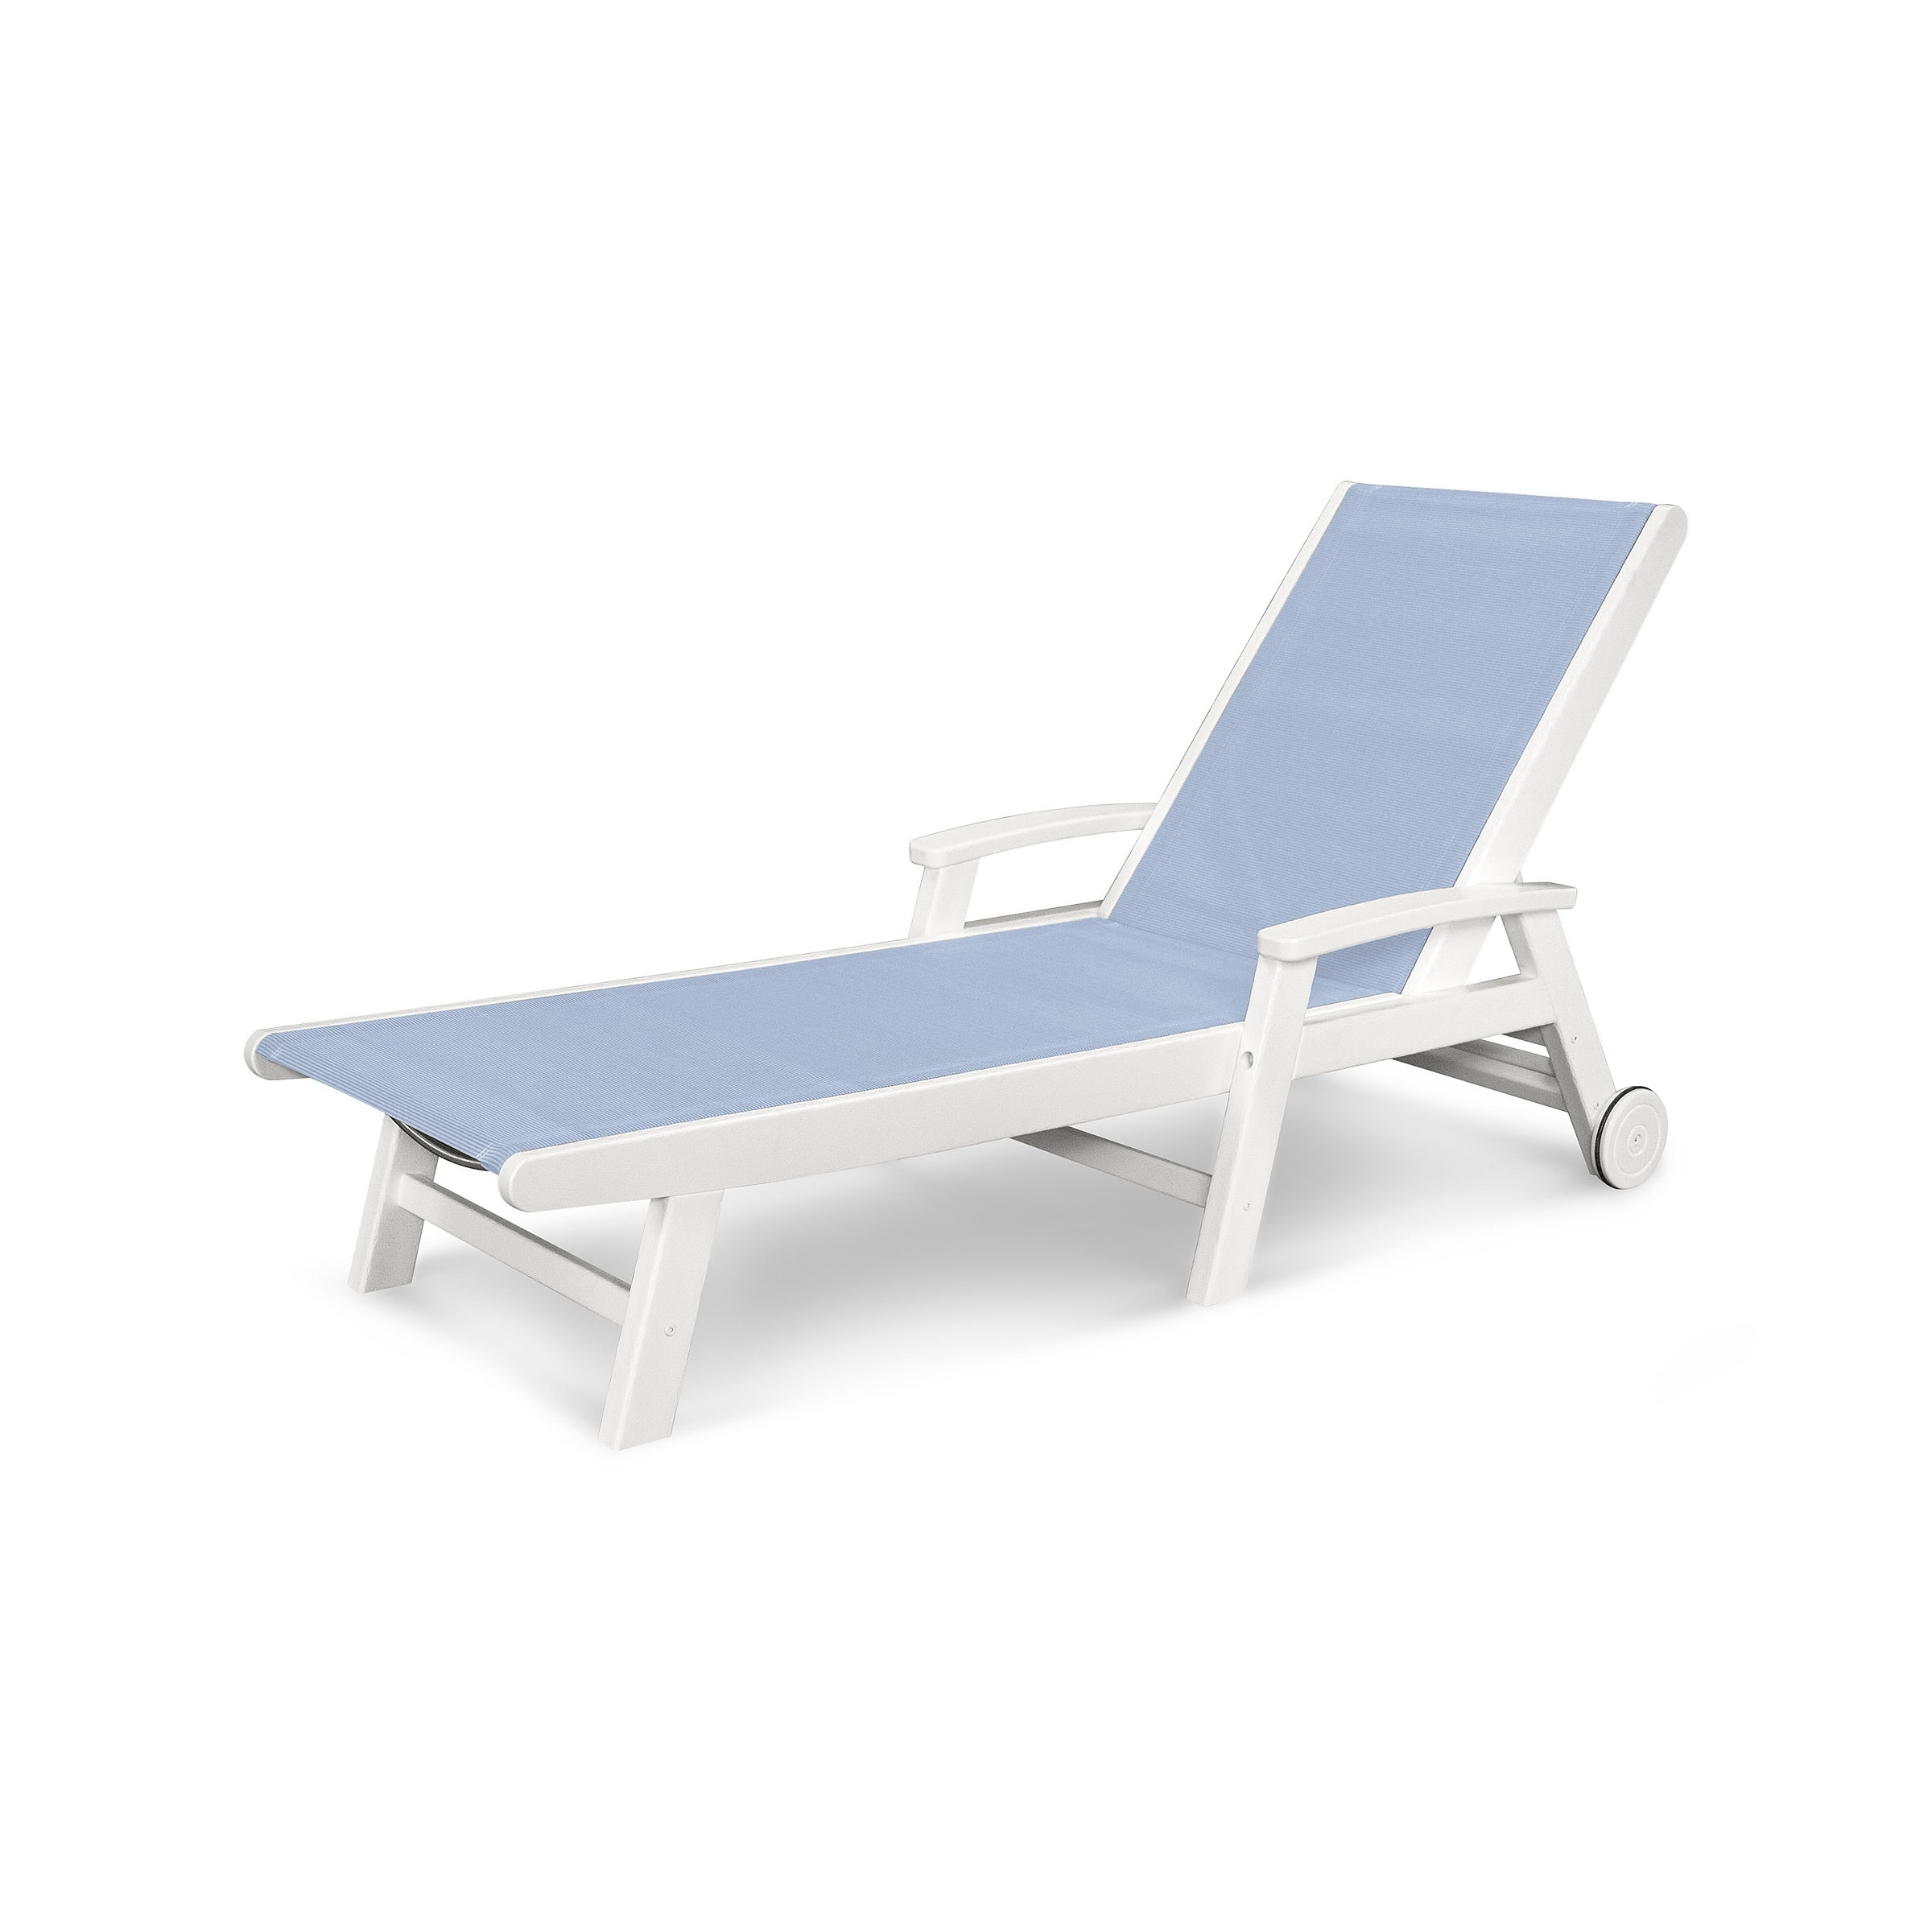 Outdoor Chaise Lounges (View 7 of 15)